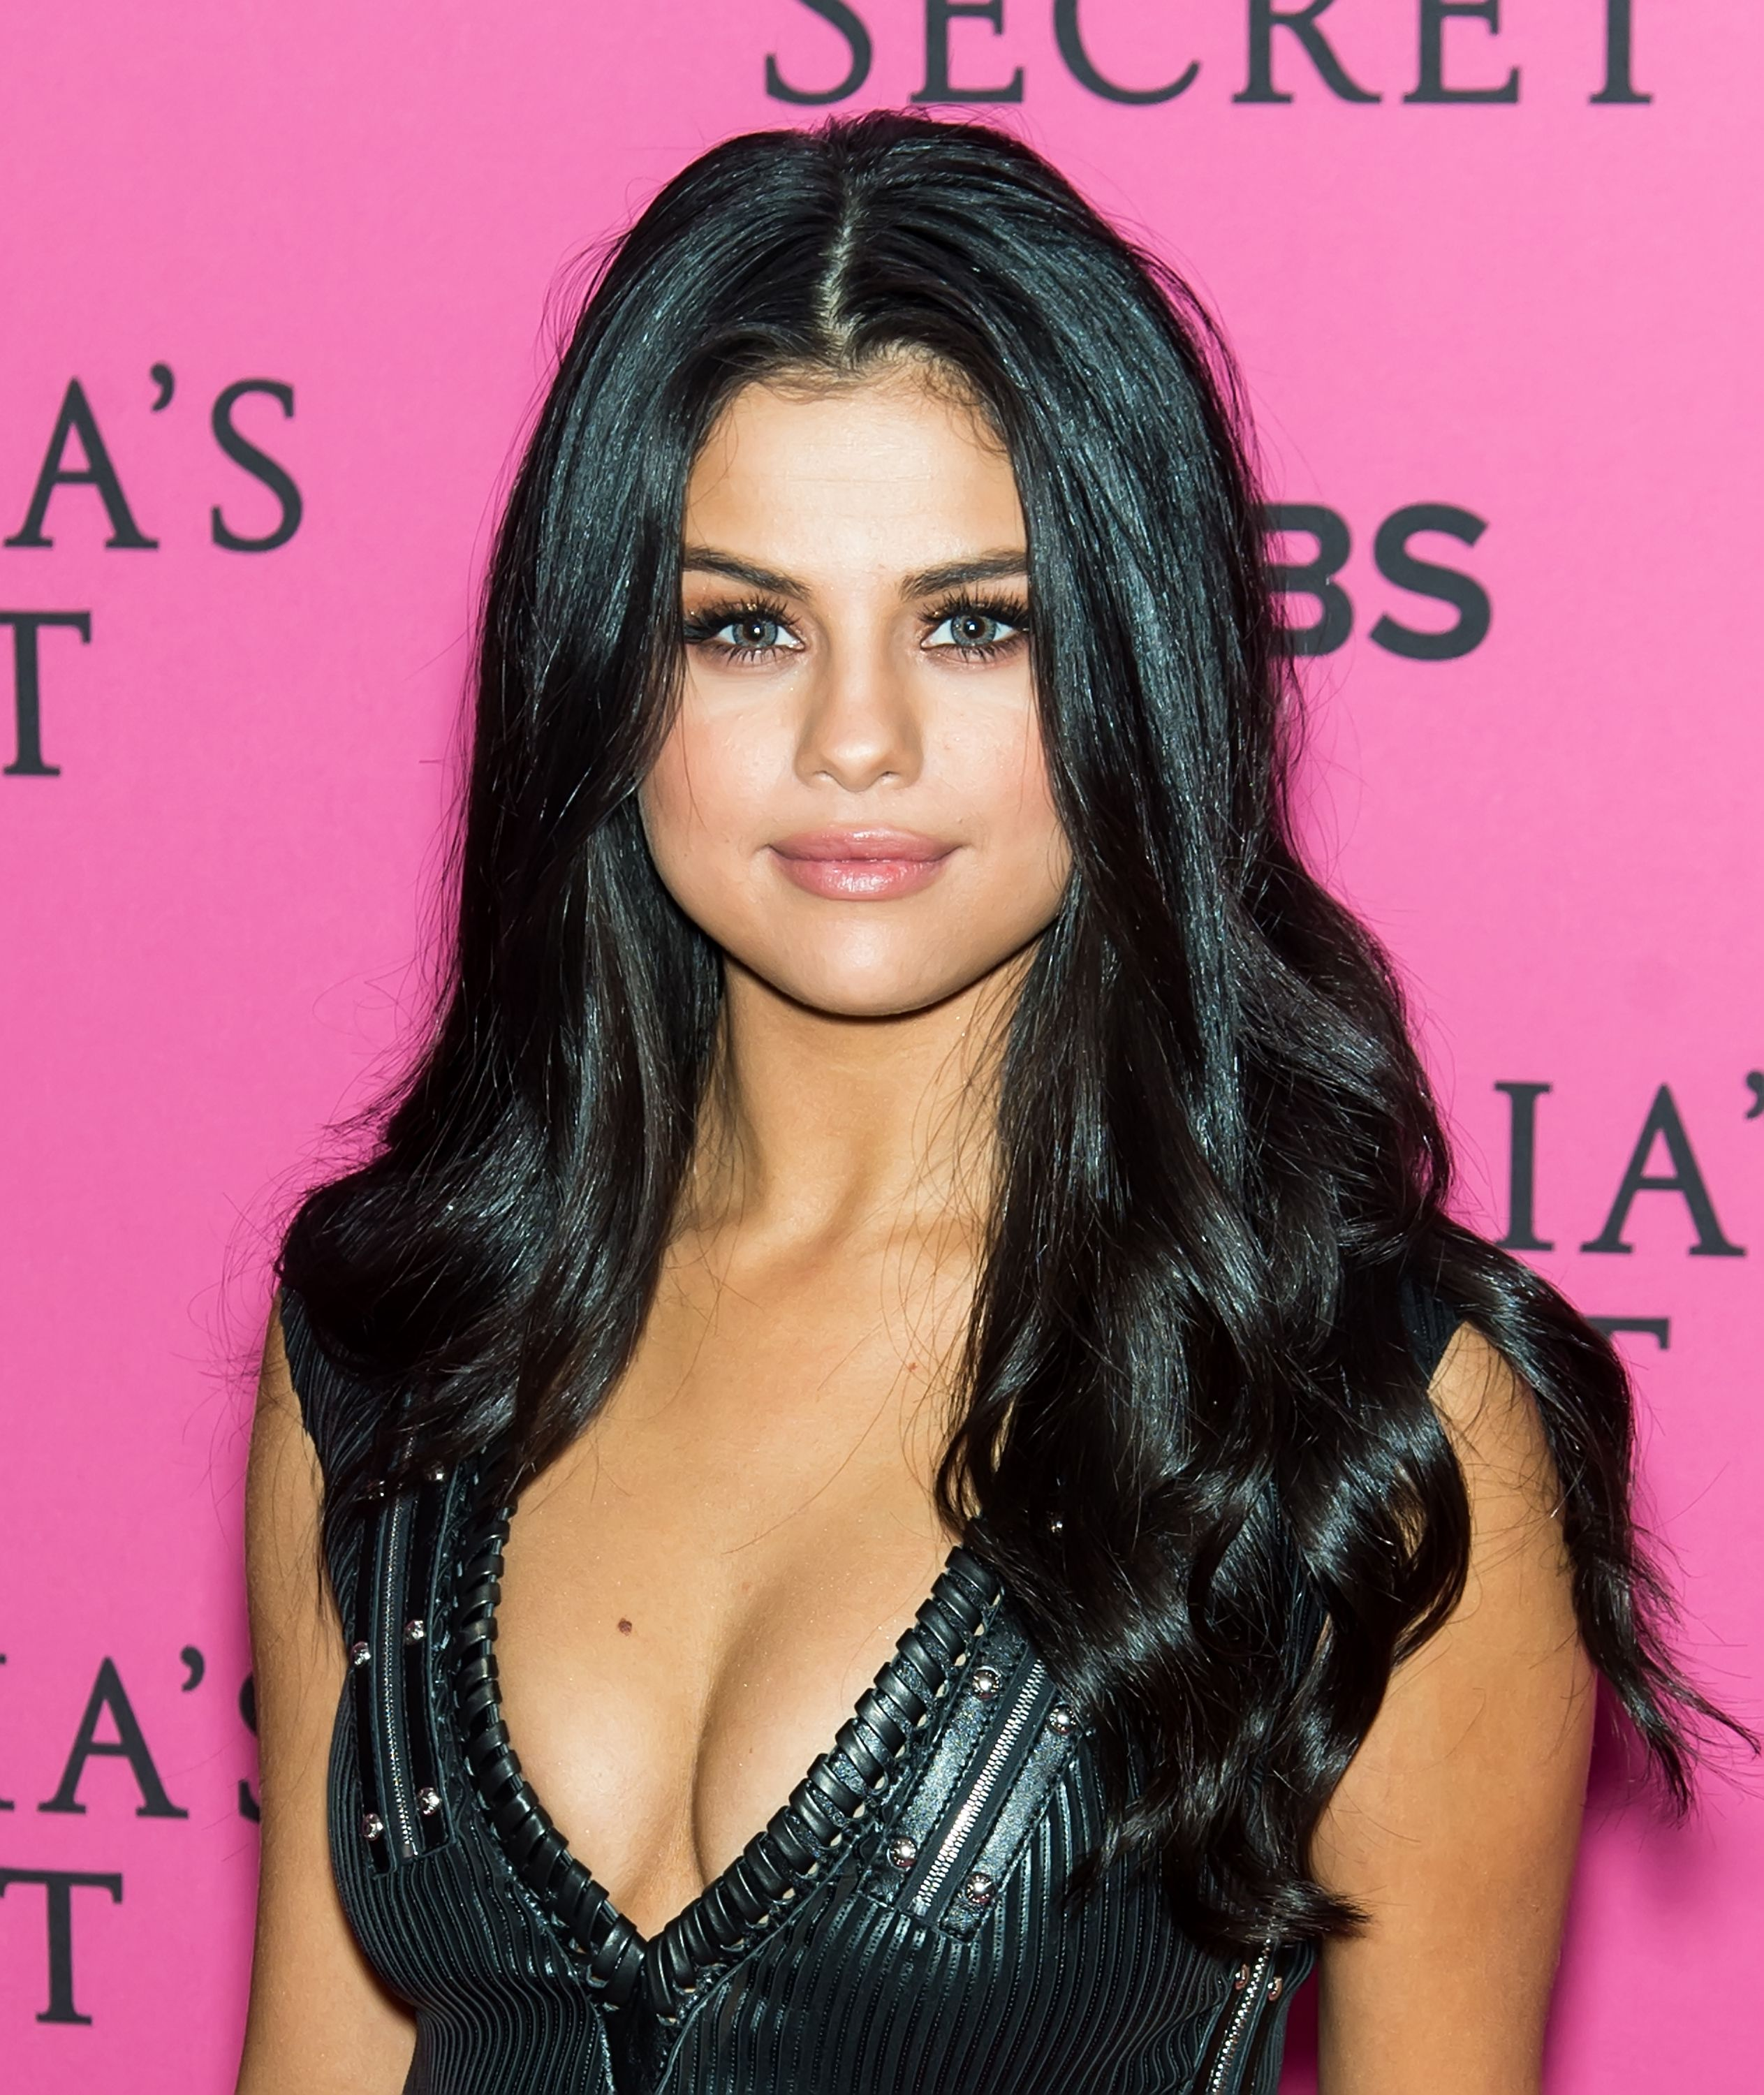 30+ Best Selena Gomez Hairstyles, From Short Hair and Shaved to Bangs